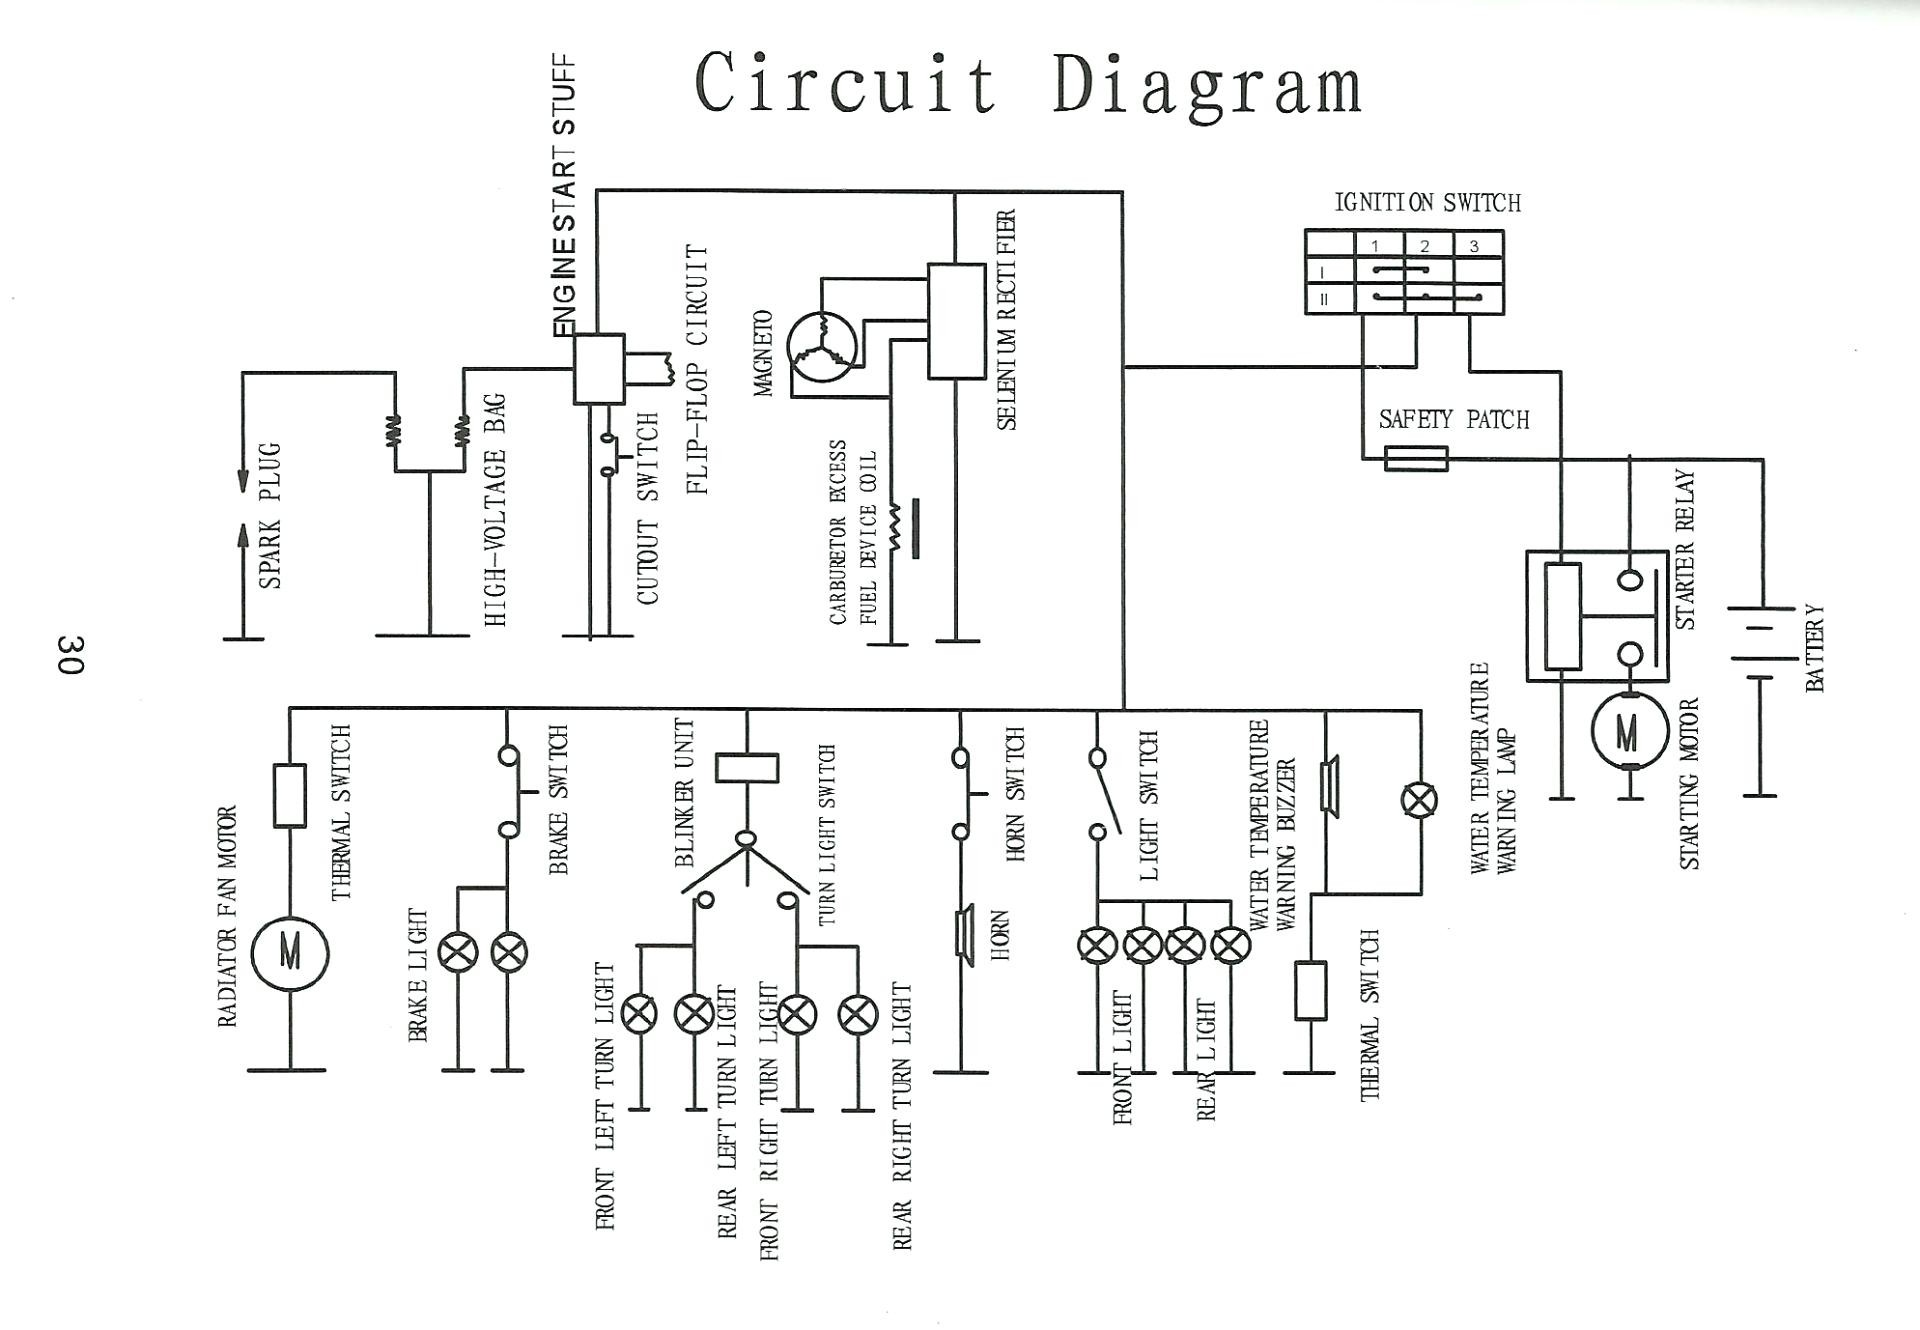 Scooter Engine Diagram Motorcycle Cd70 Chinese Atv Wiring Harness Related Post